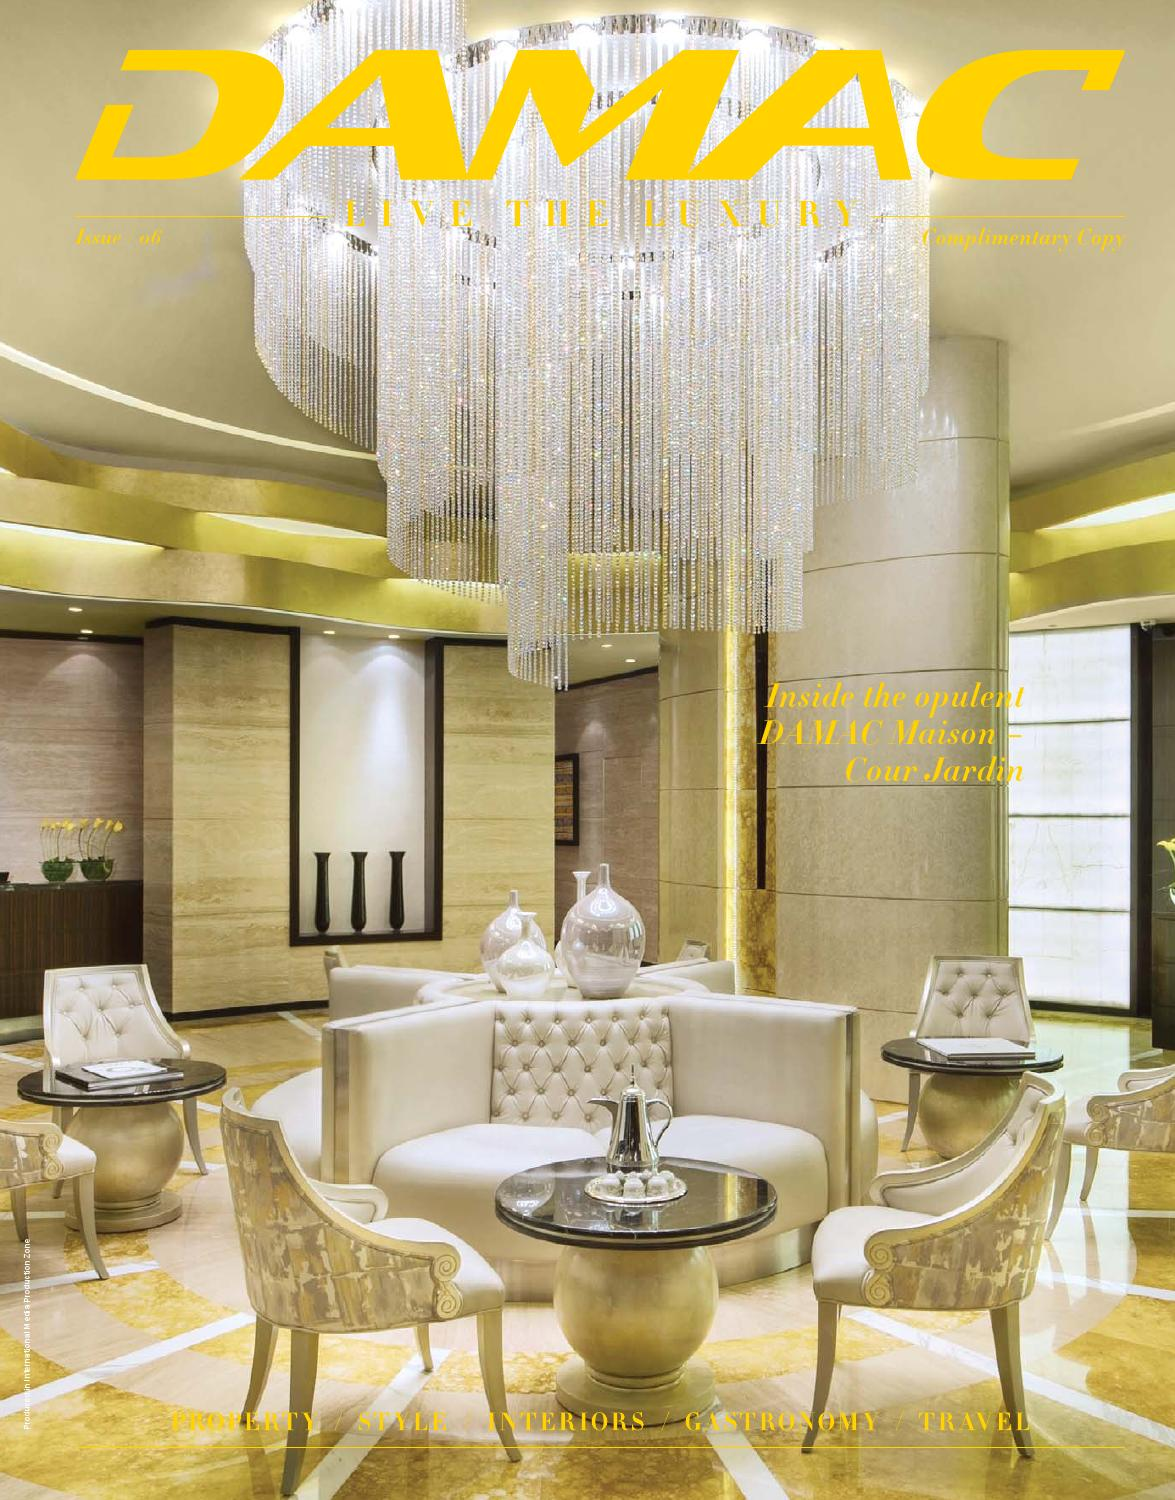 Marque Salon De Jardin Luxe Damac issue 06 by Hot Media issuu Of 38 Luxe Marque Salon De Jardin